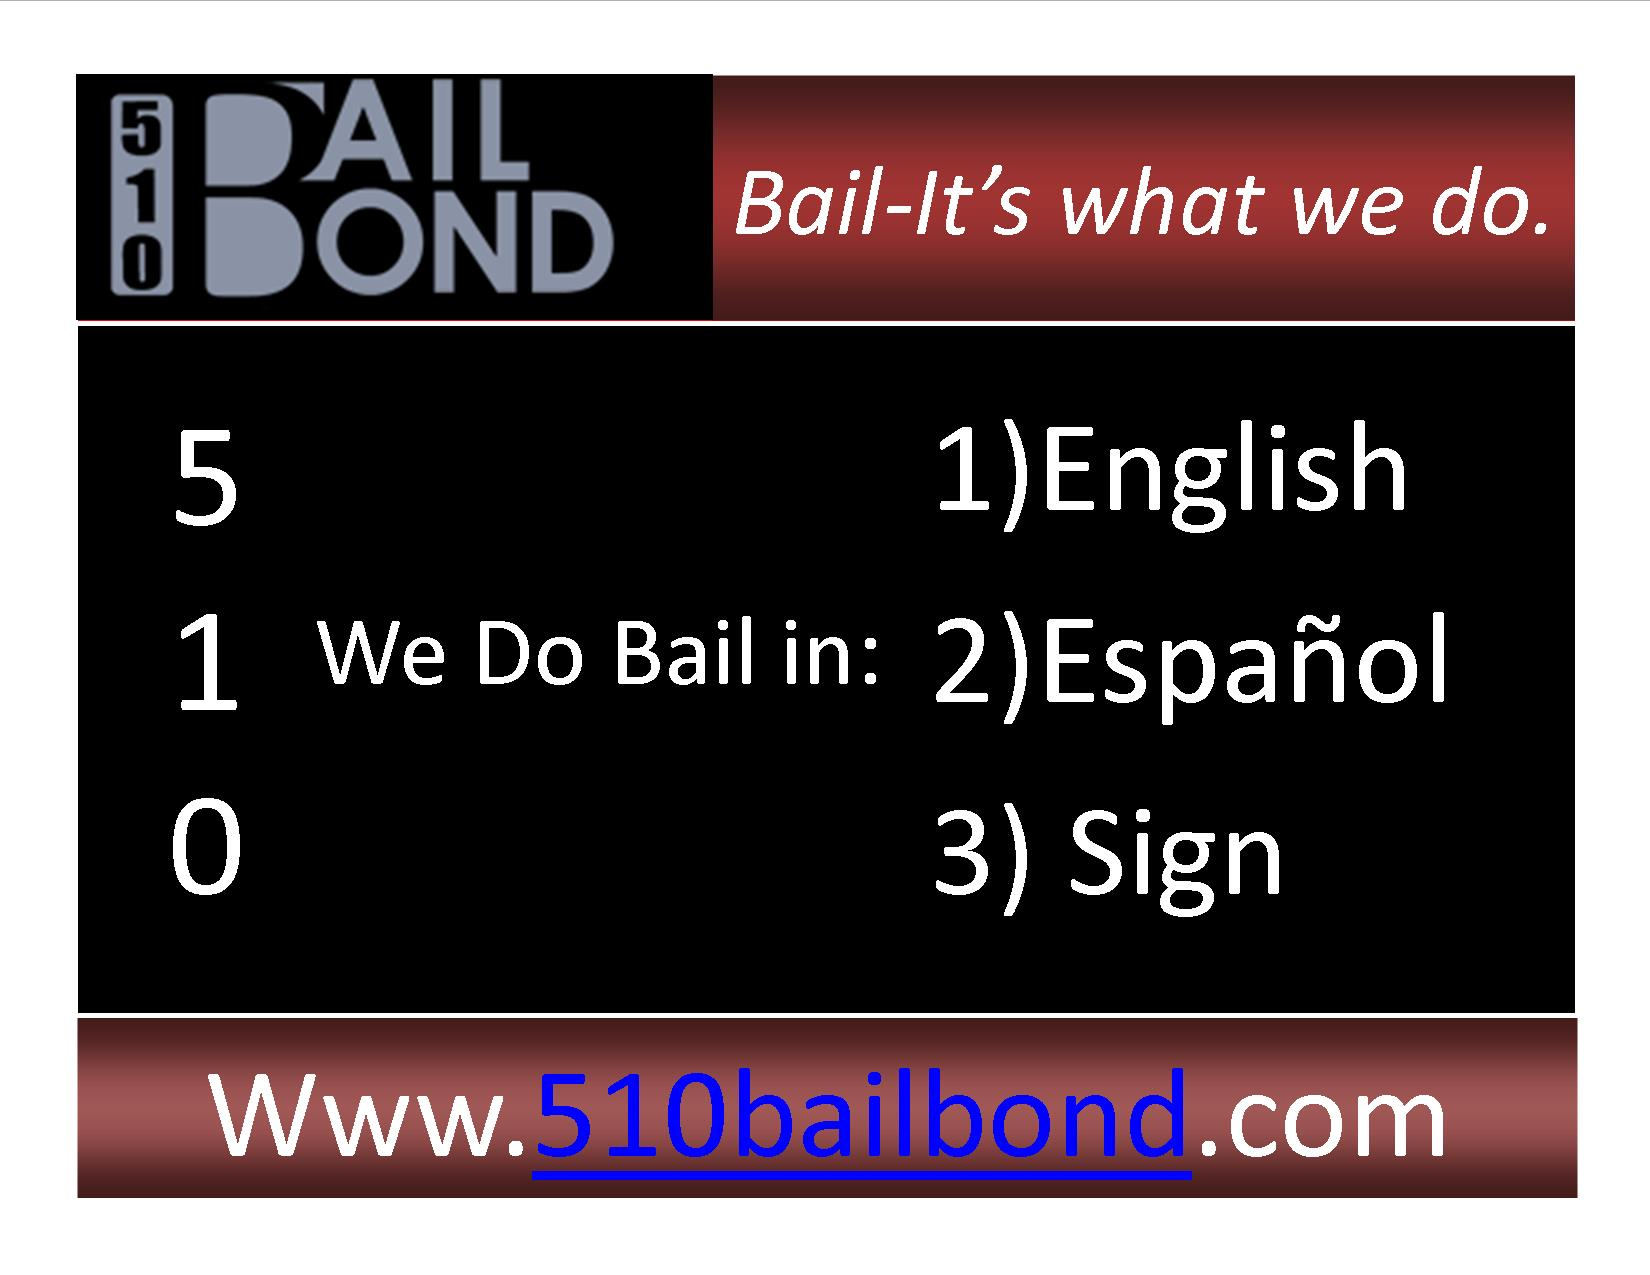 We do bail in